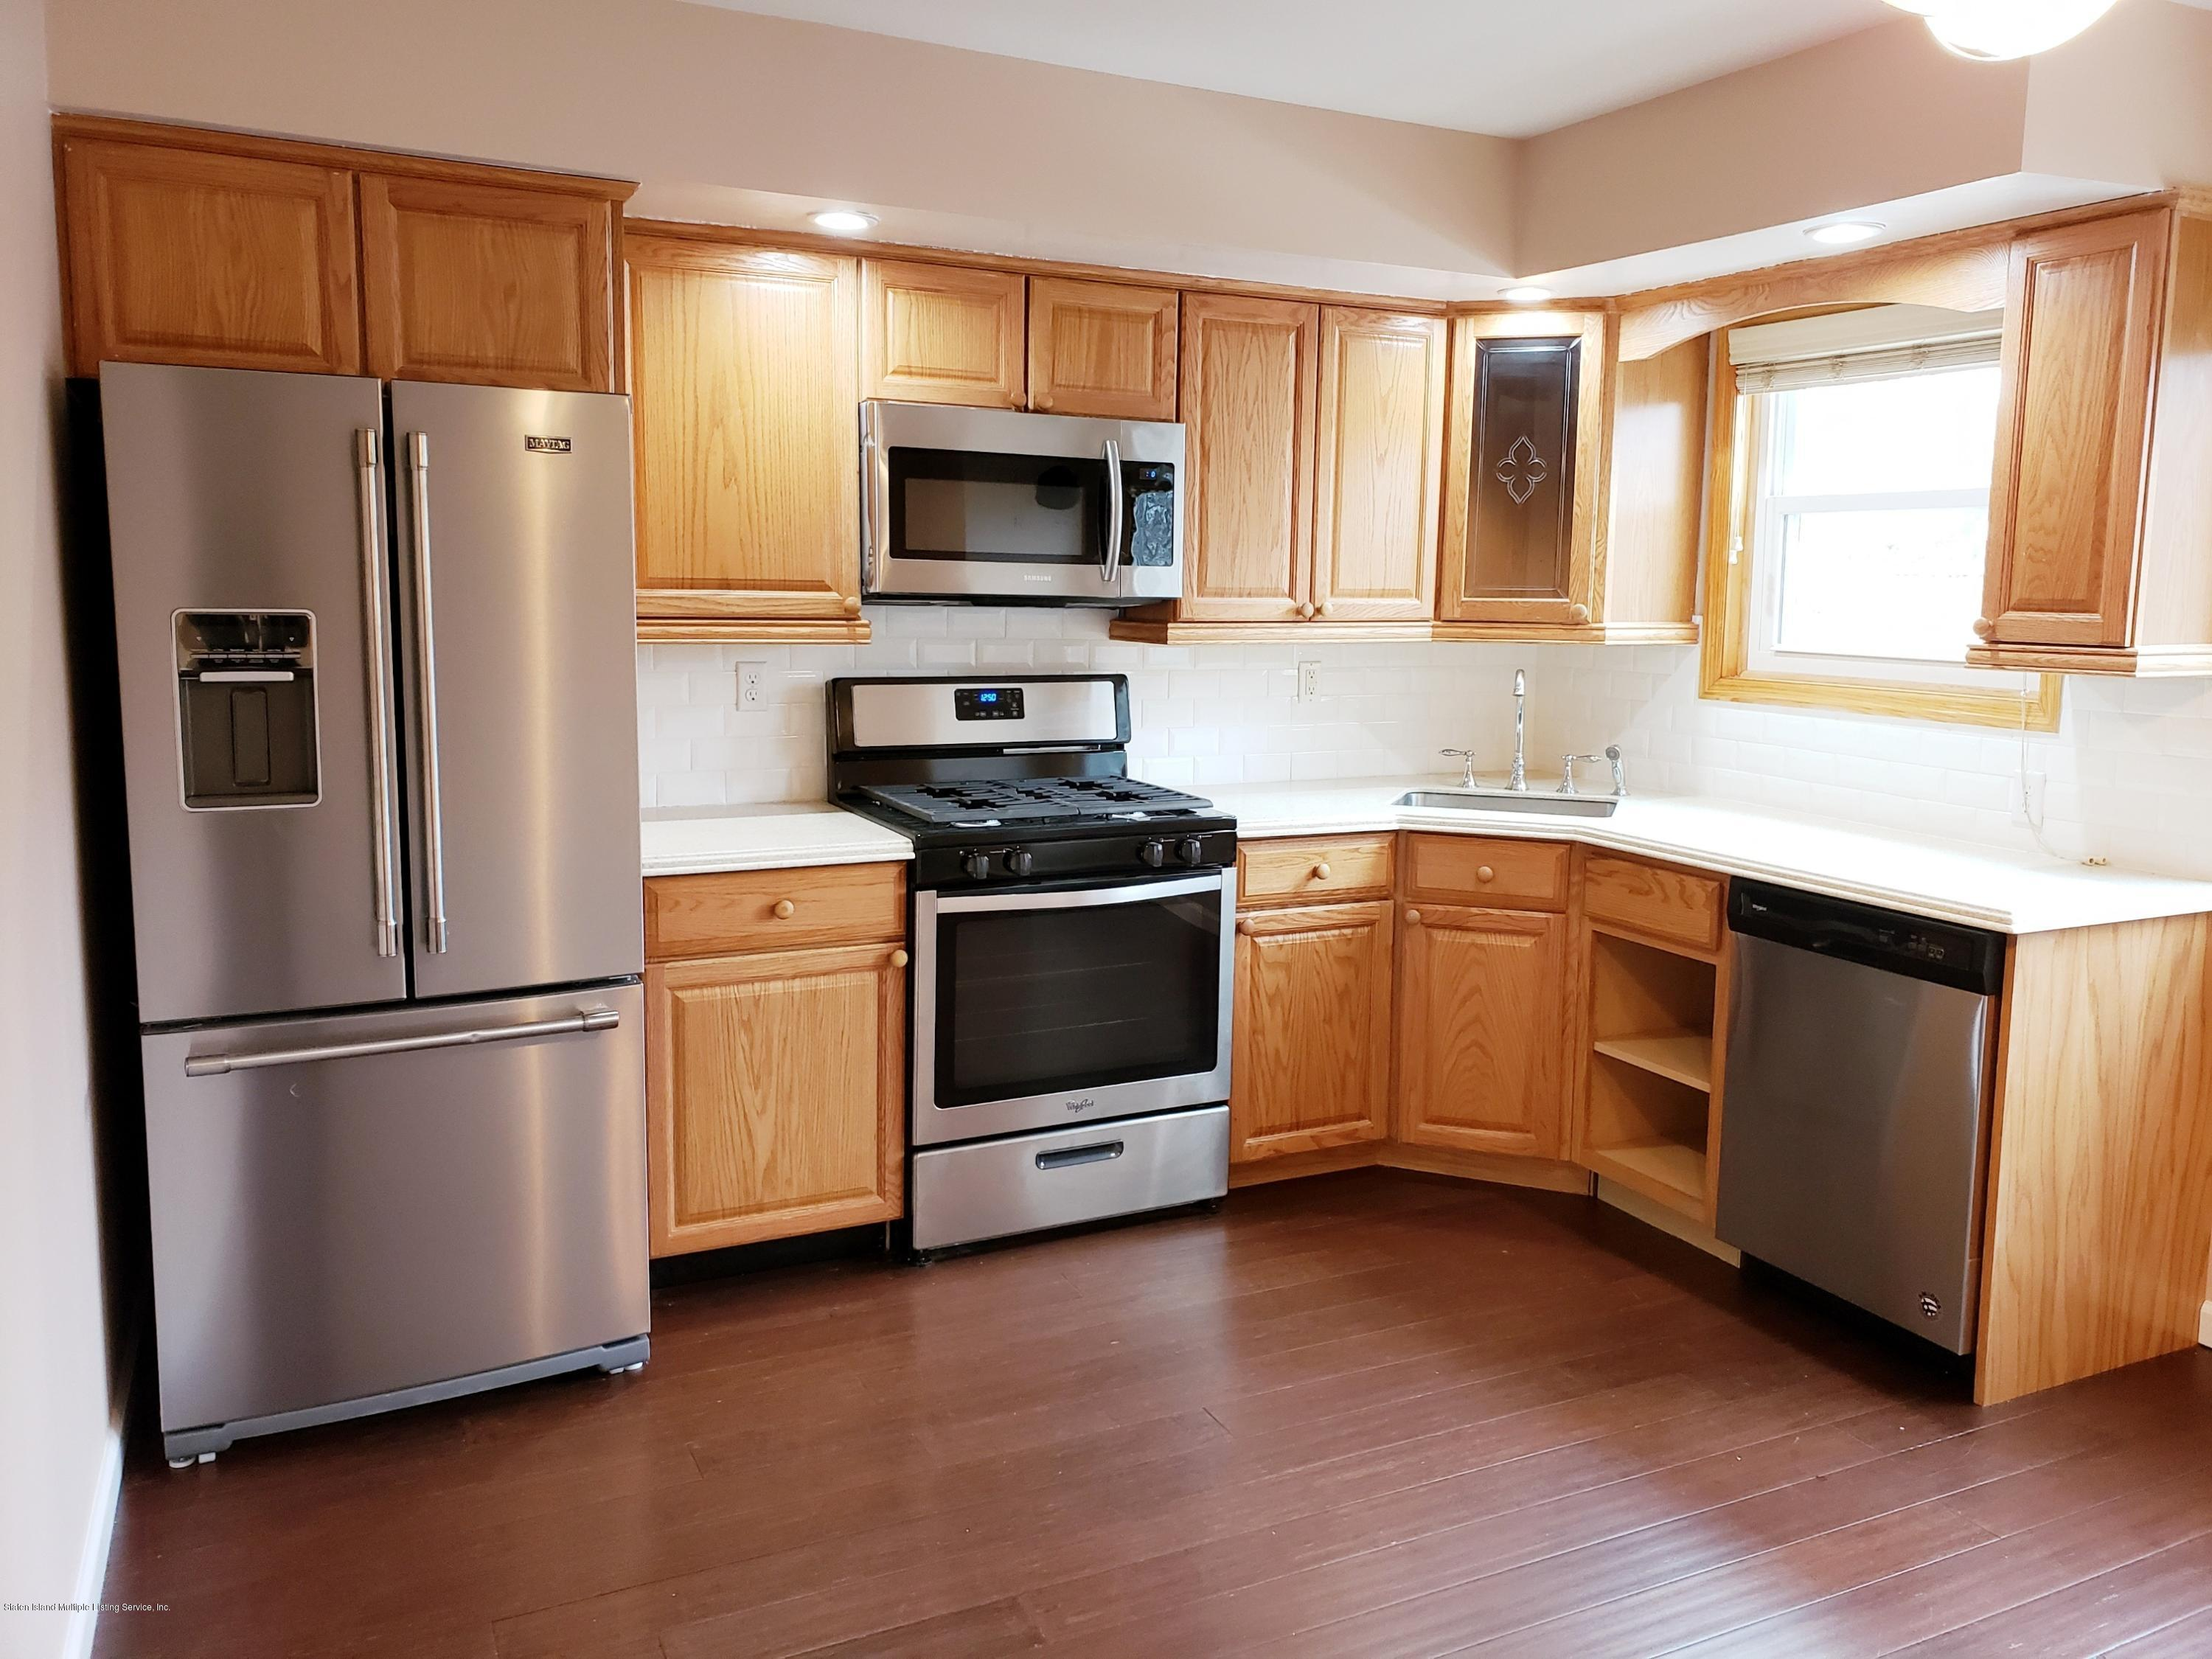 Single Family - Attached 31 Gail Court  Staten Island, NY 10306, MLS-1127035-6